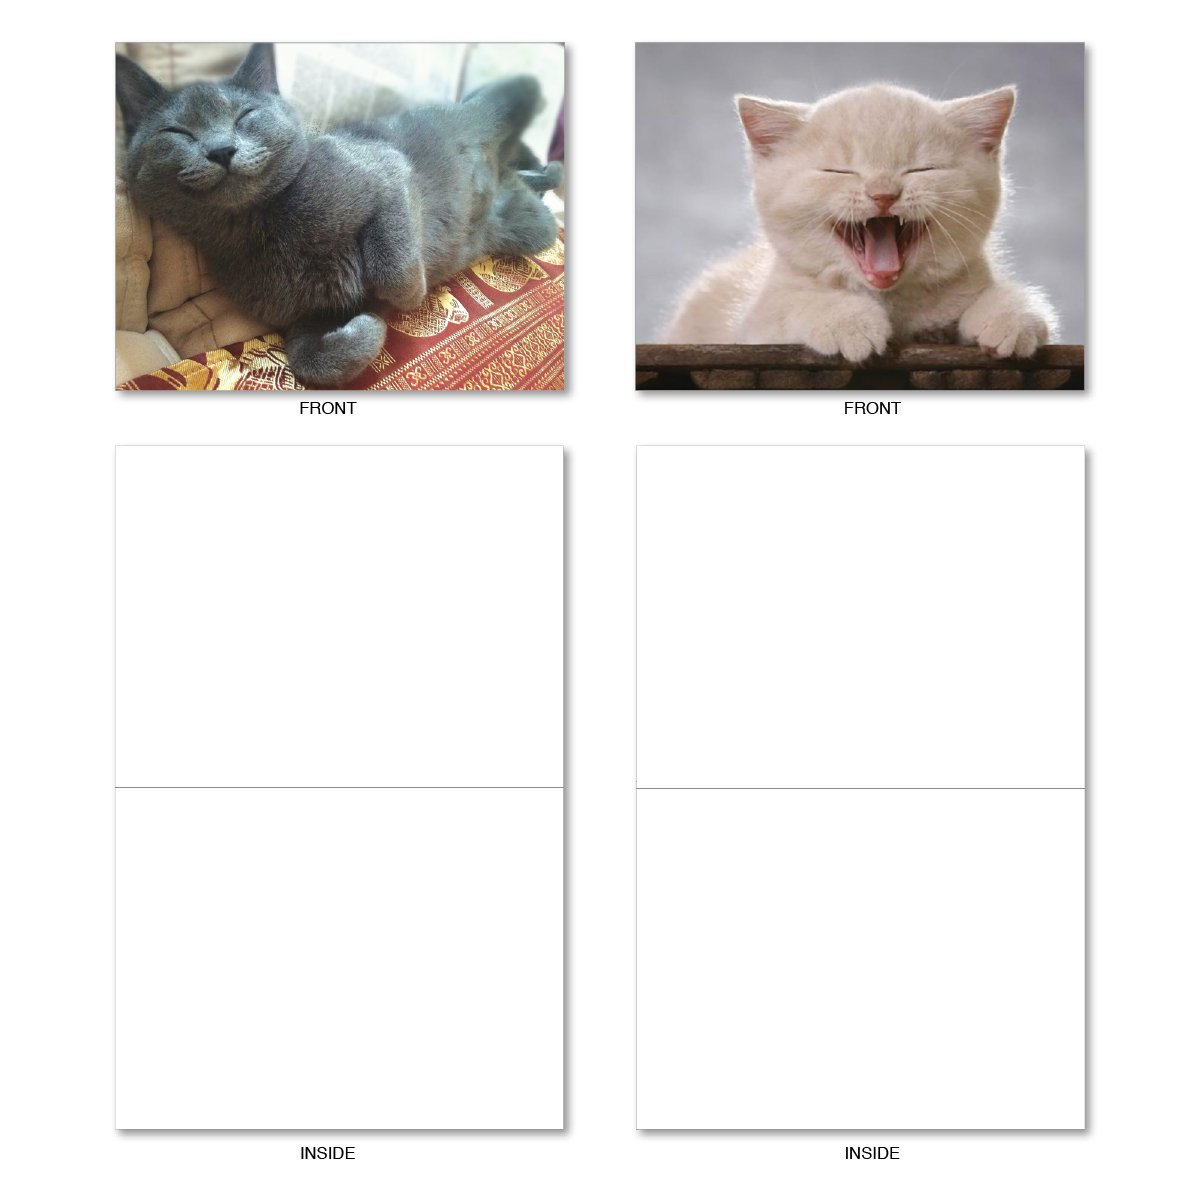 - Assorted Cat Smitten Kitten Blank Greeting Cards with Envelopes Box of 10 Kitten Themed Note Cards NobleWorks M6485OCB Adorable All Occasion Cat and Animal Stationery 4 x 5.12 inch